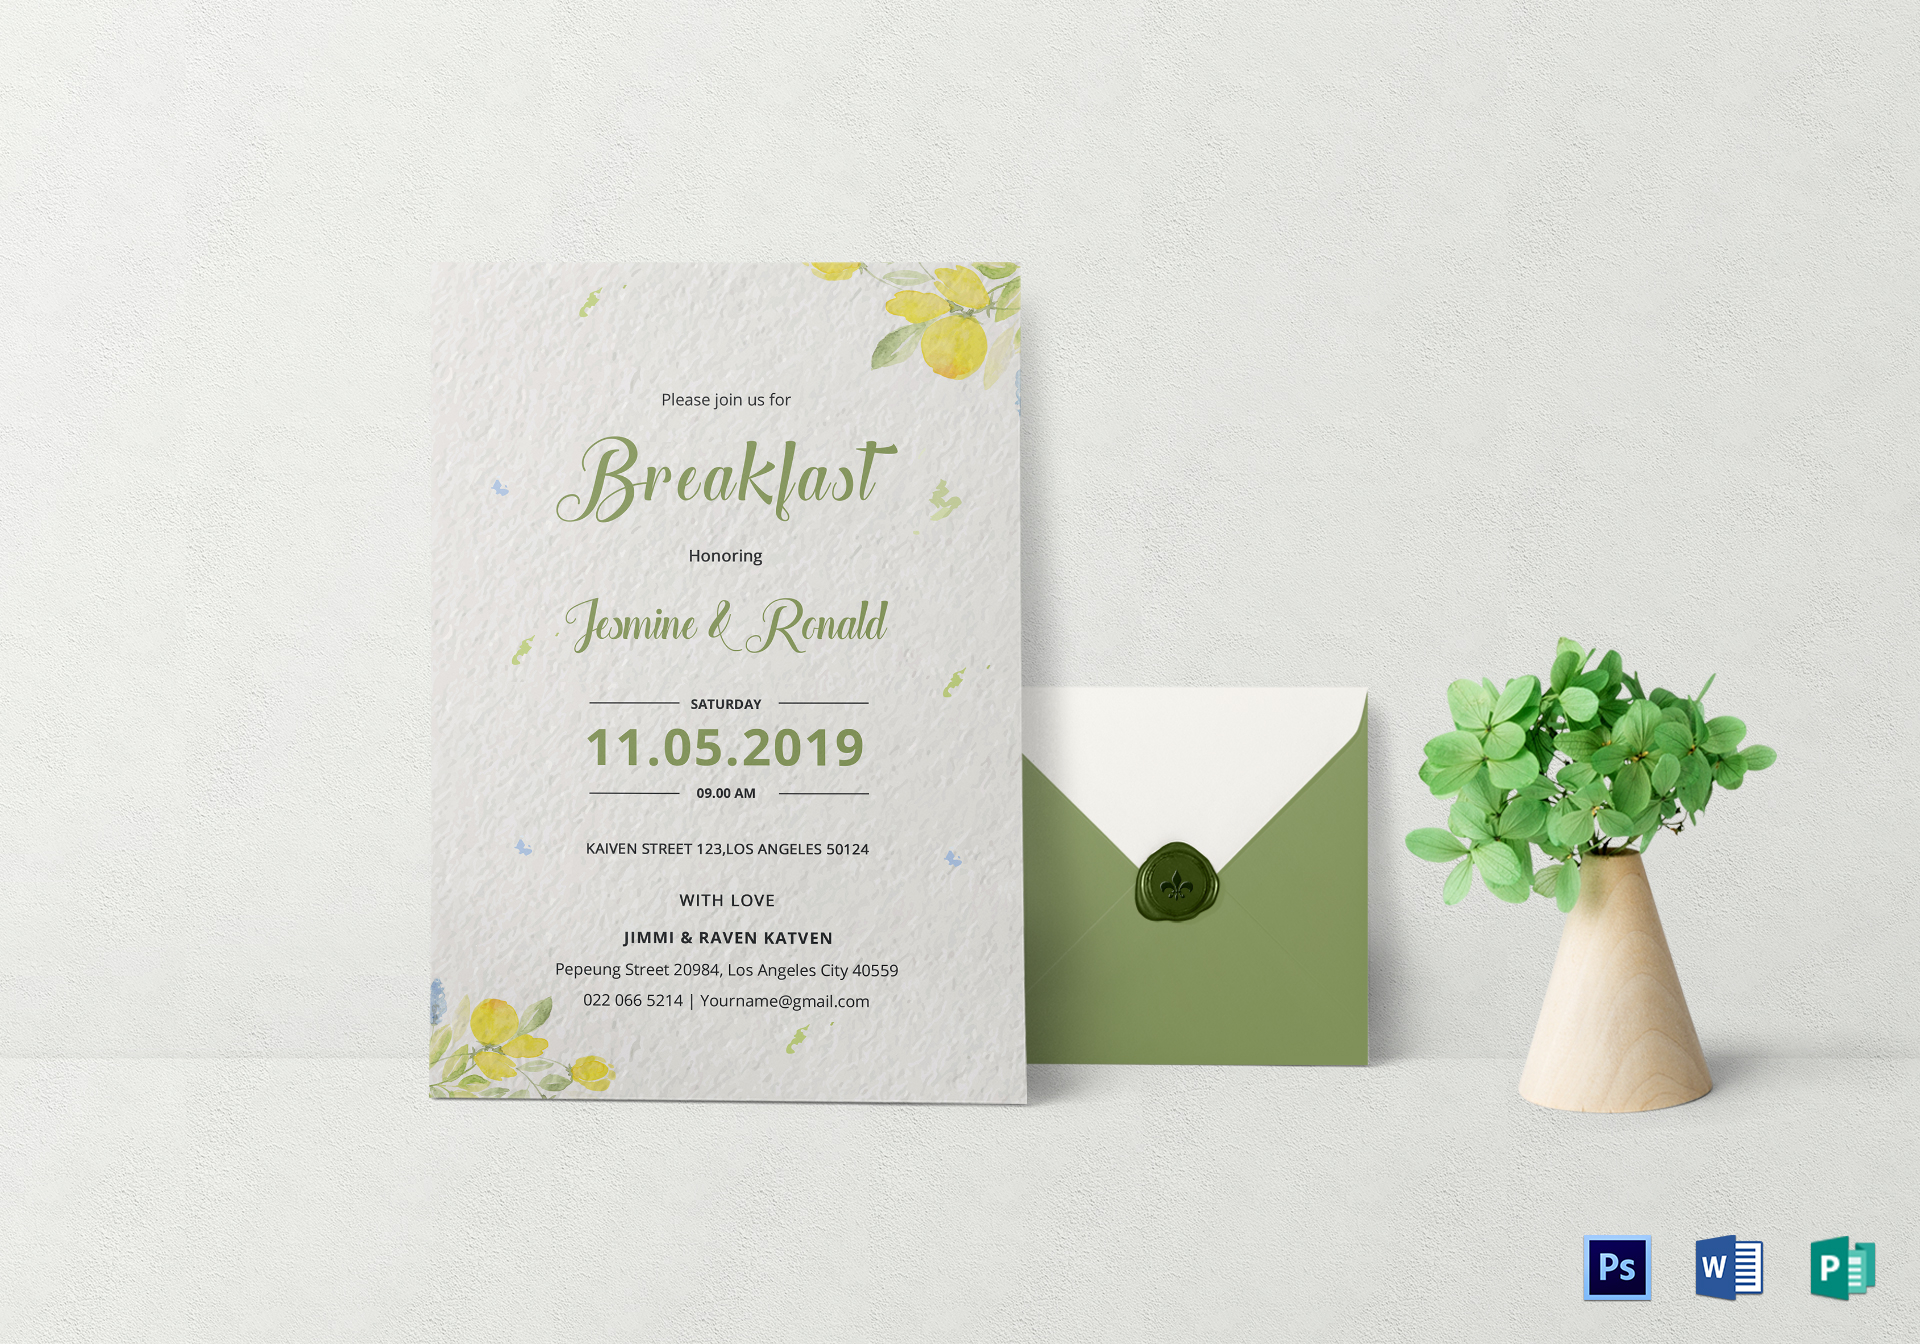 breakfast invitation design template in word psd publisher